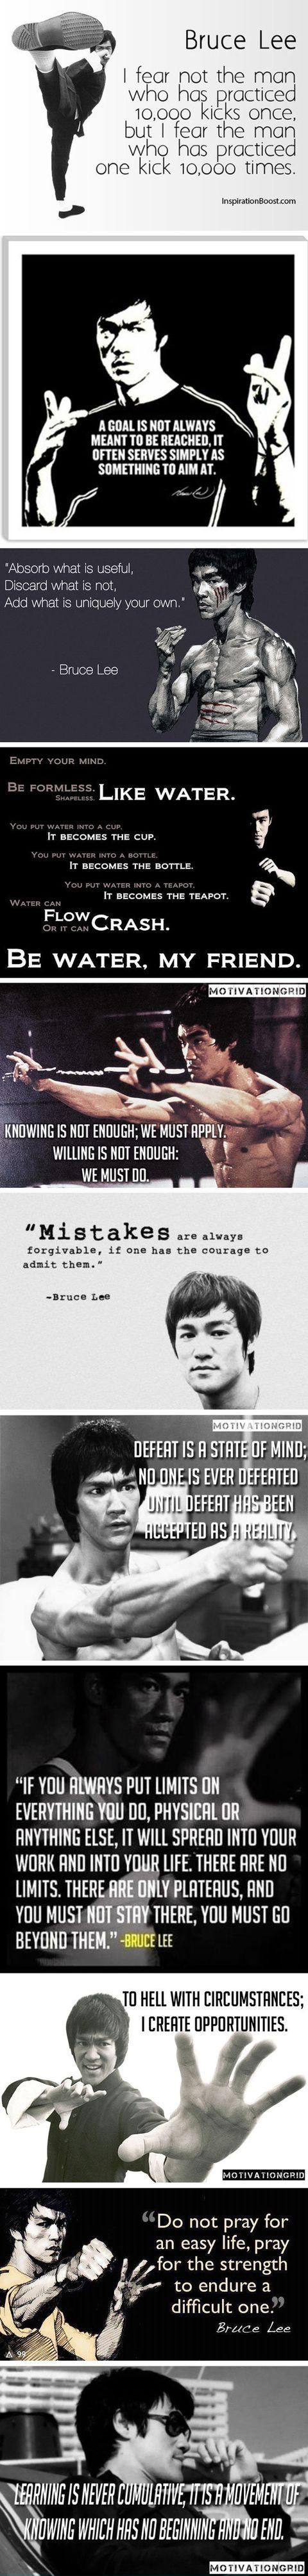 Bruce lee wisdom - some great classroom posters!